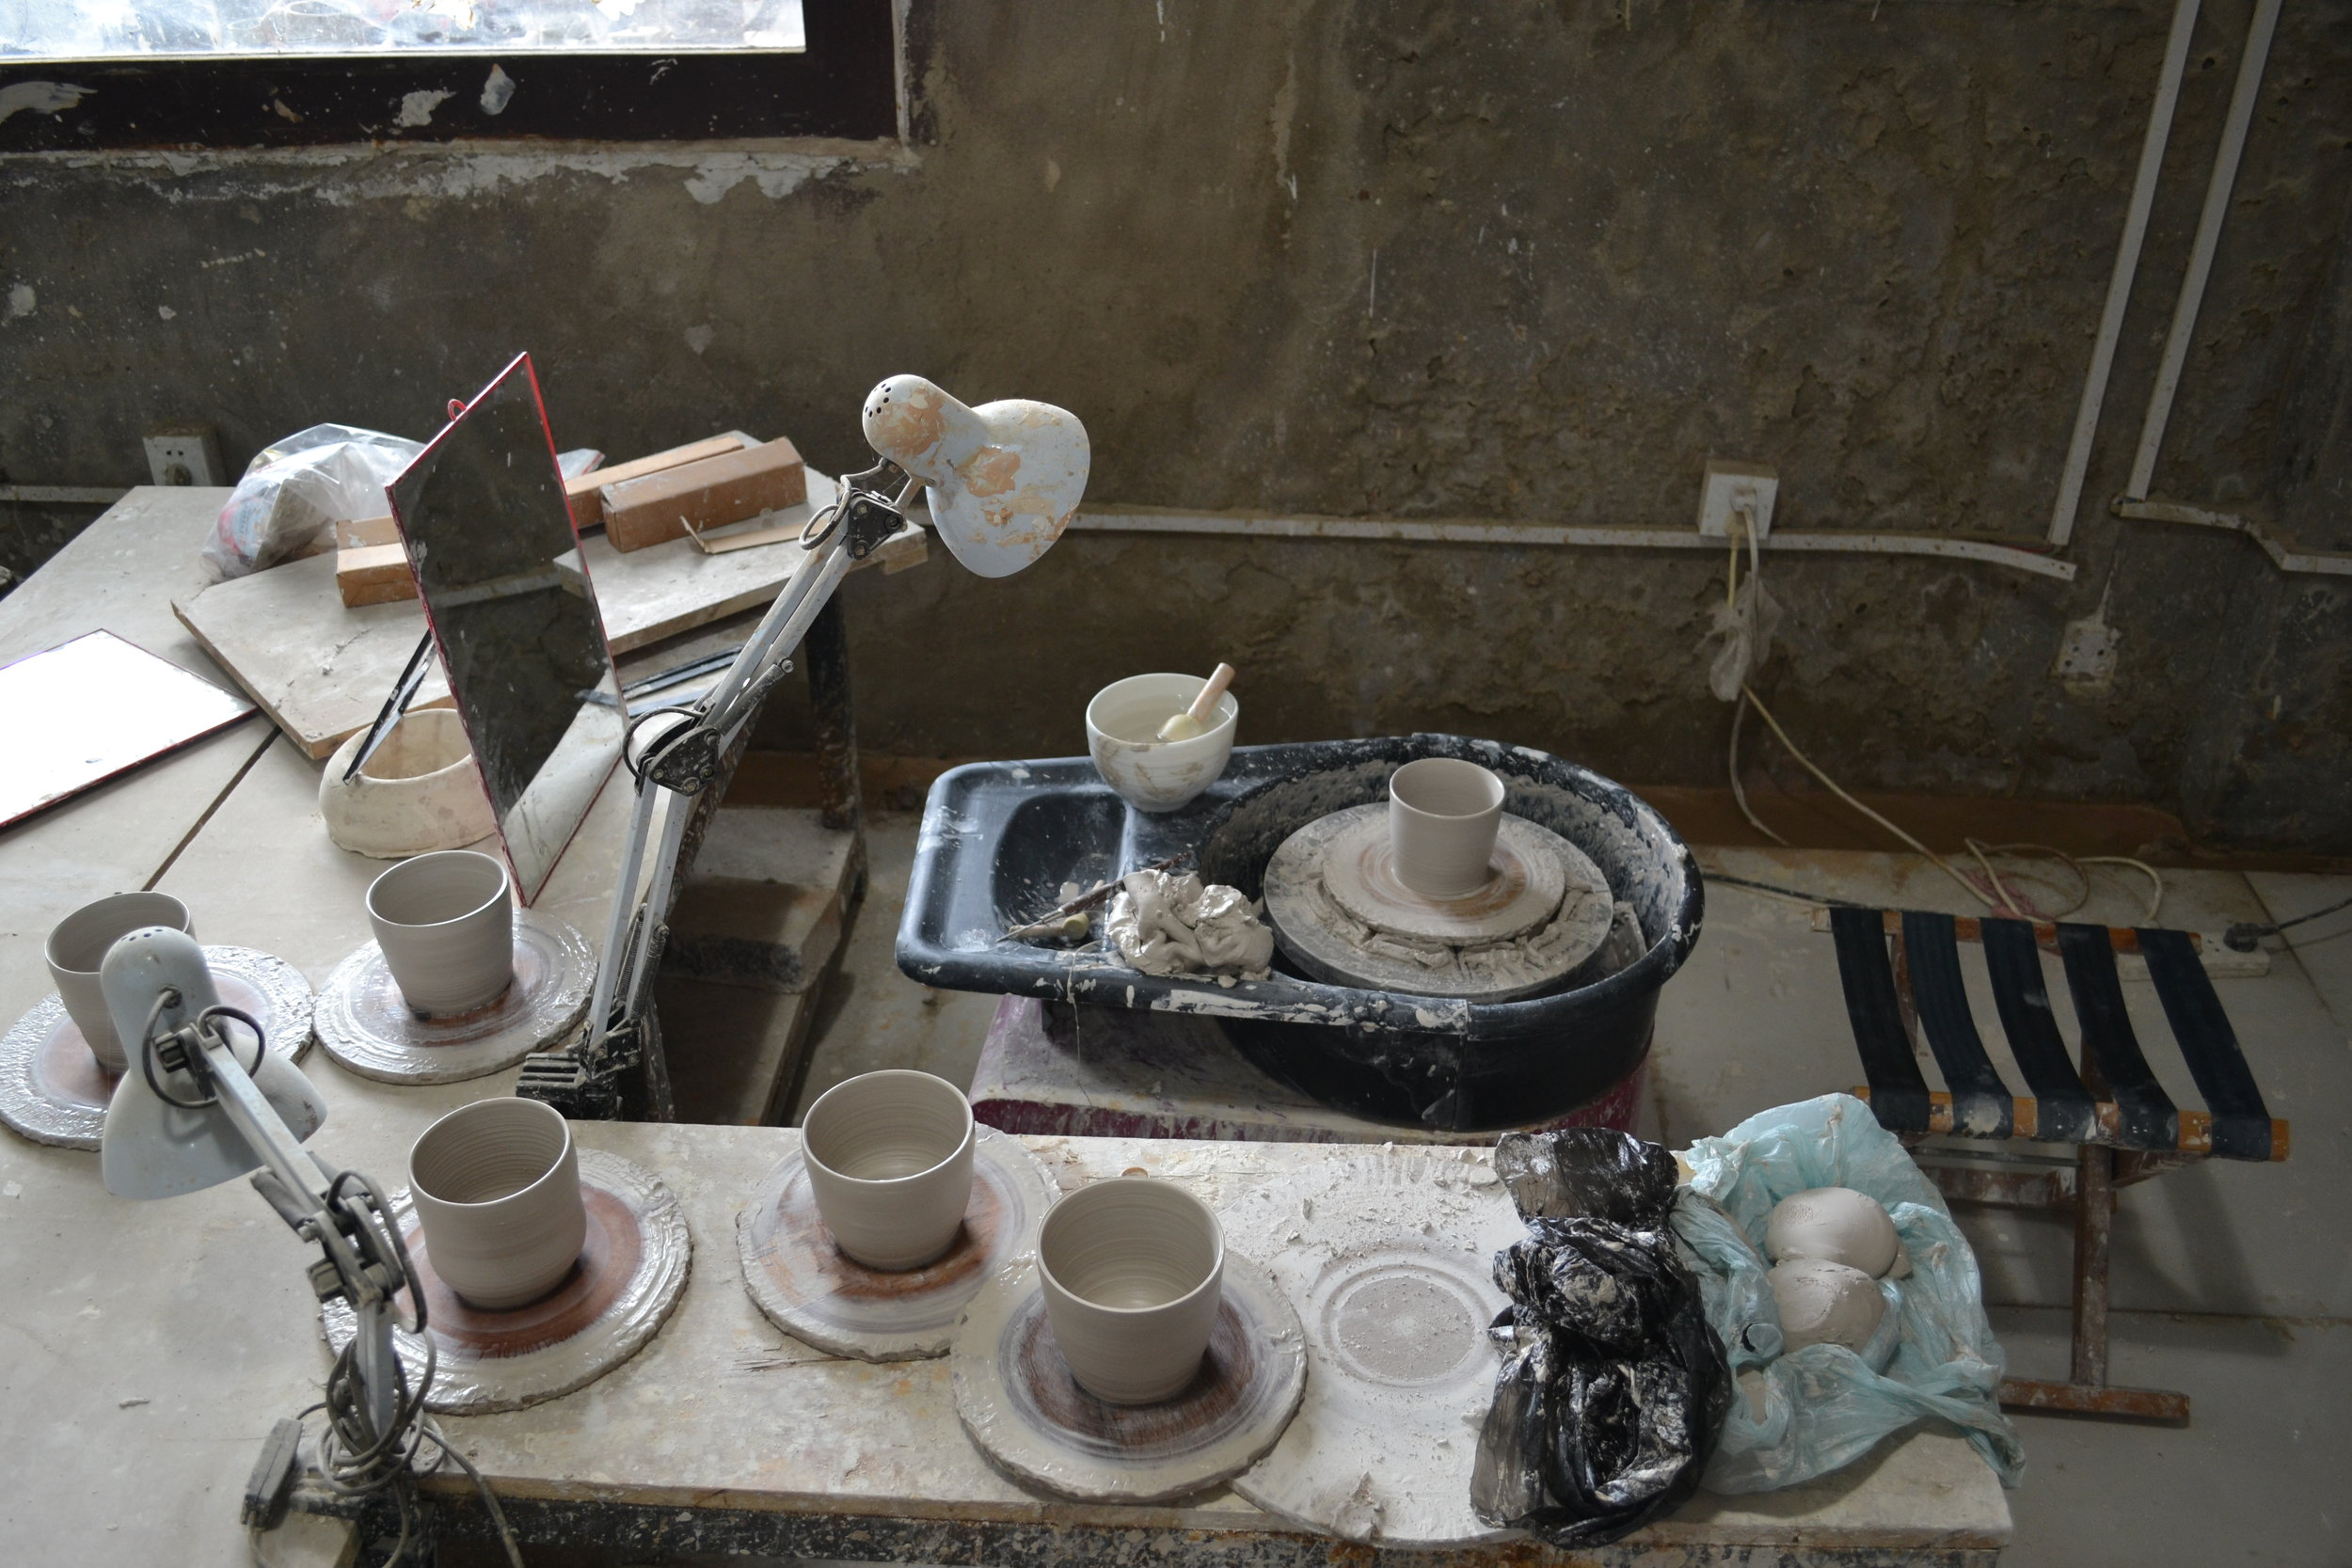 Best porcelain from the ceramic city of Jingdezhen.